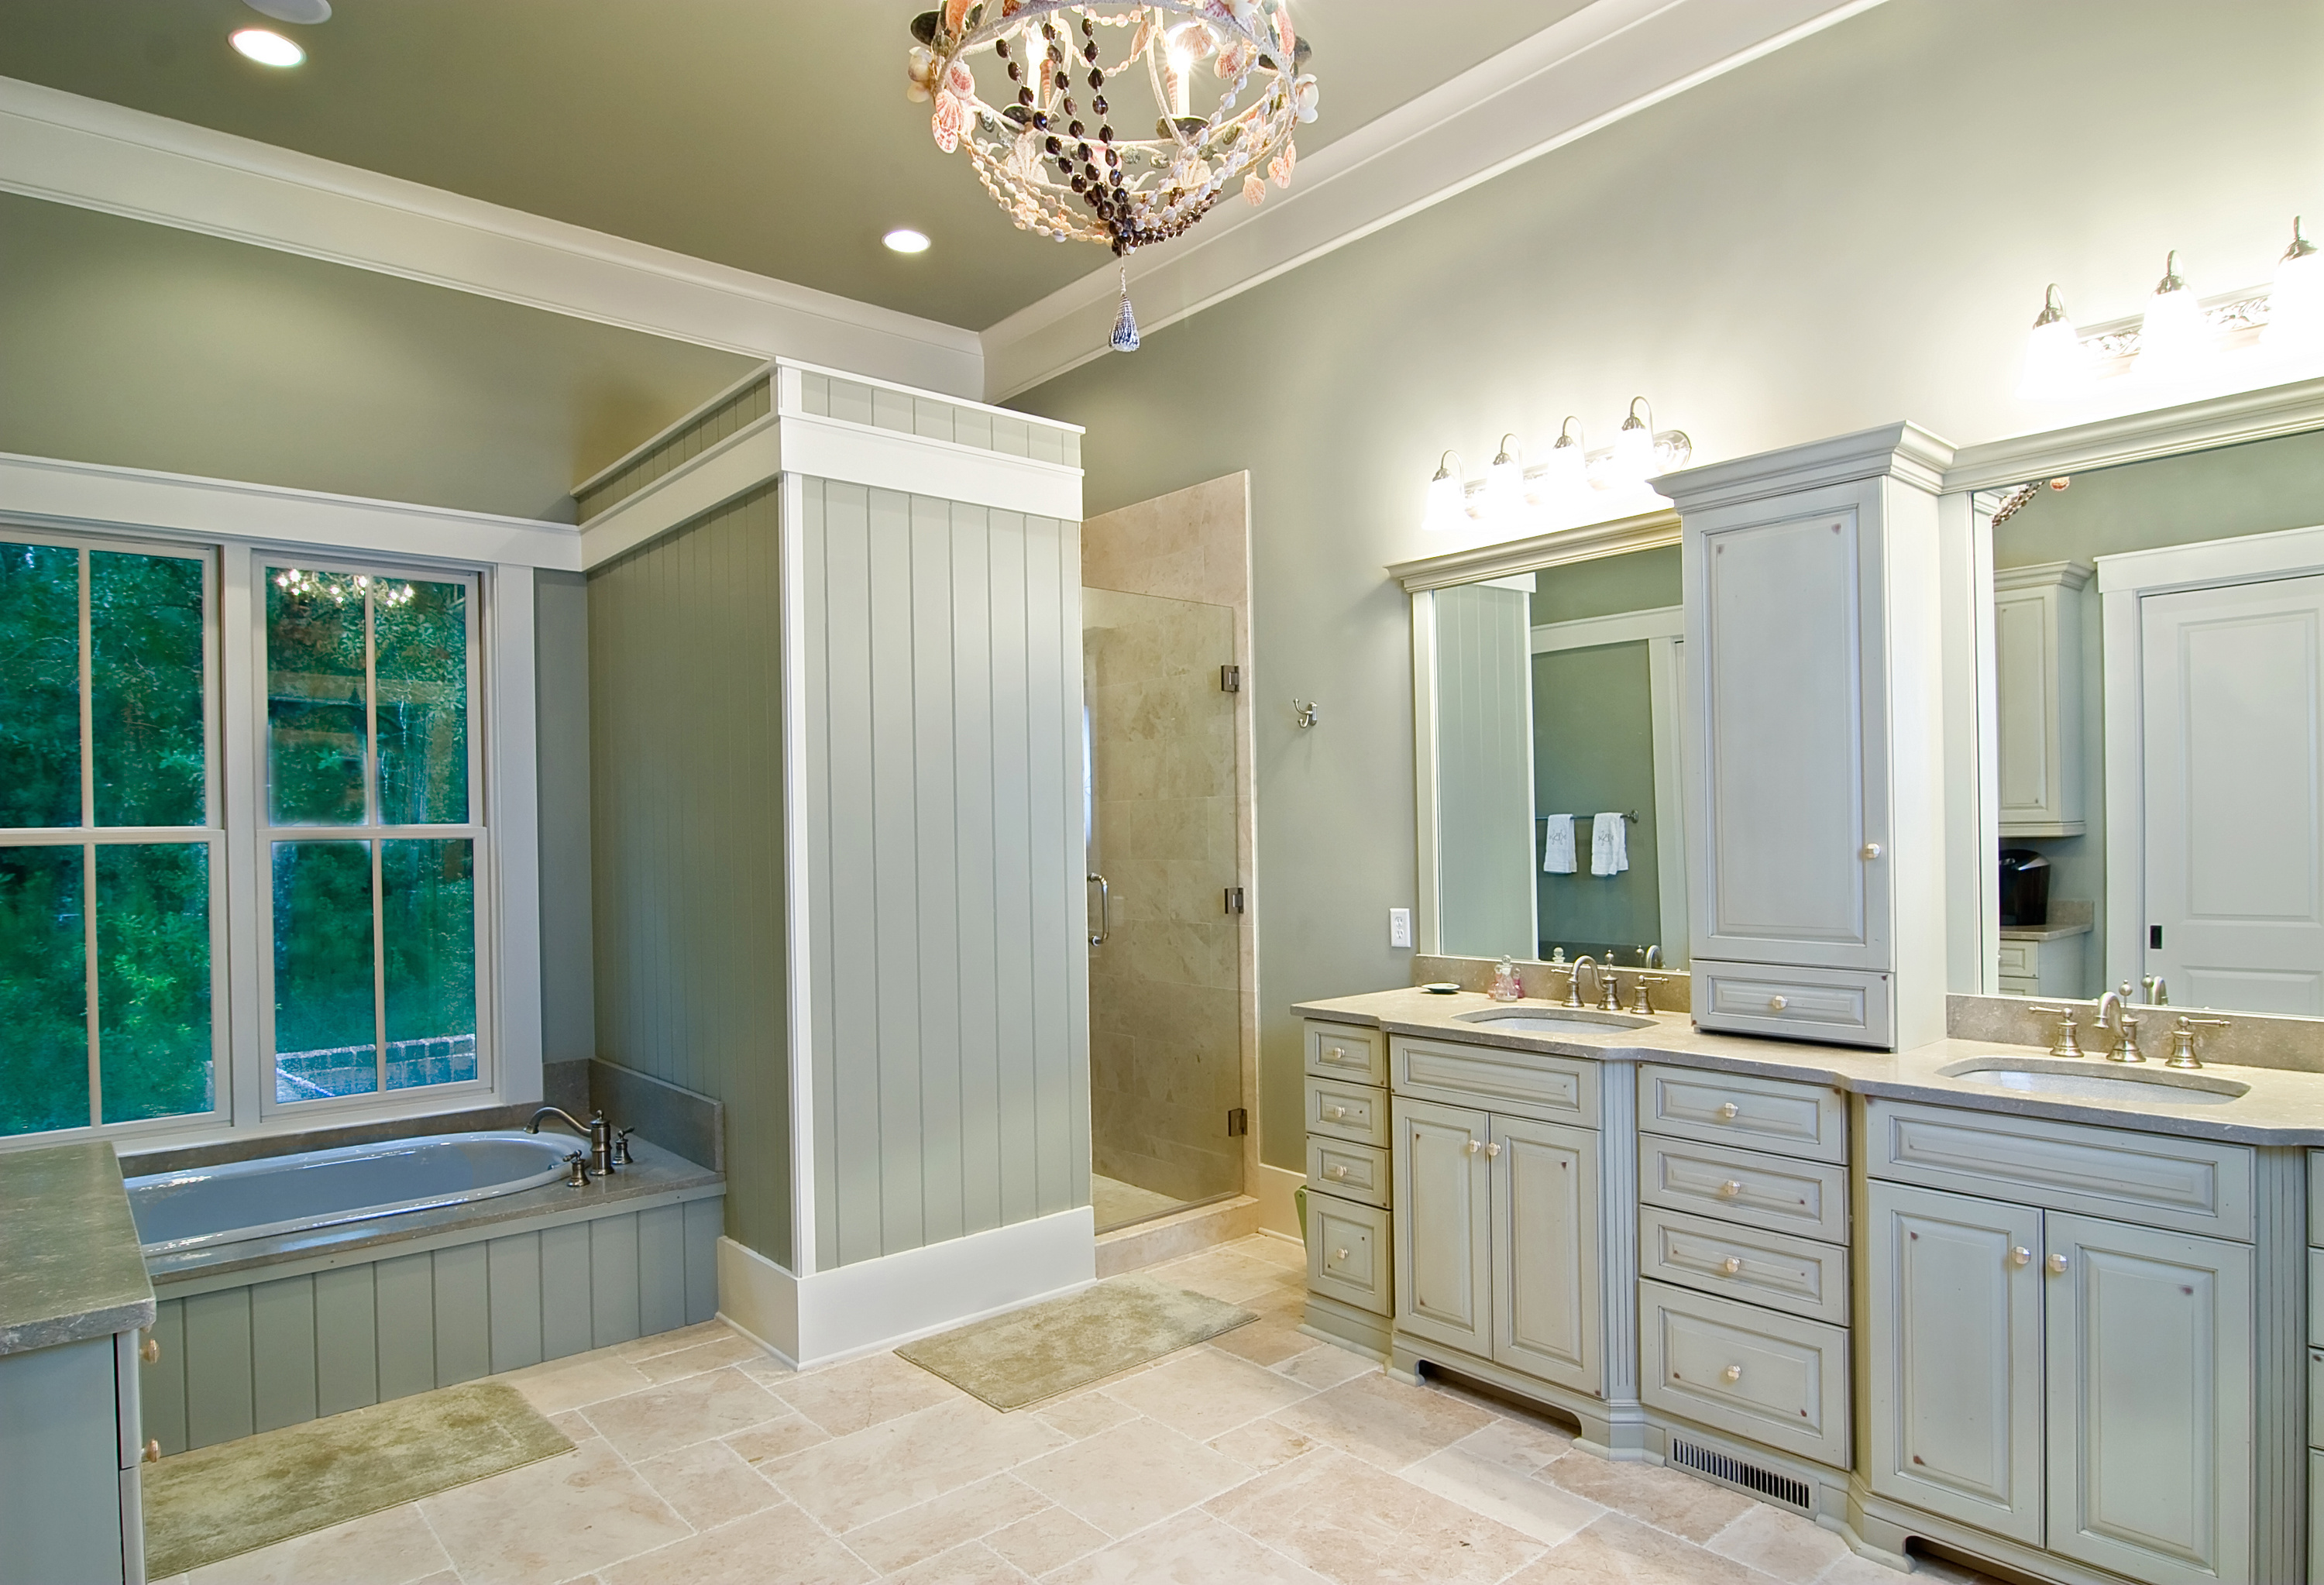 expensive modern bathroom remodel - Bathroom Remodel Modern